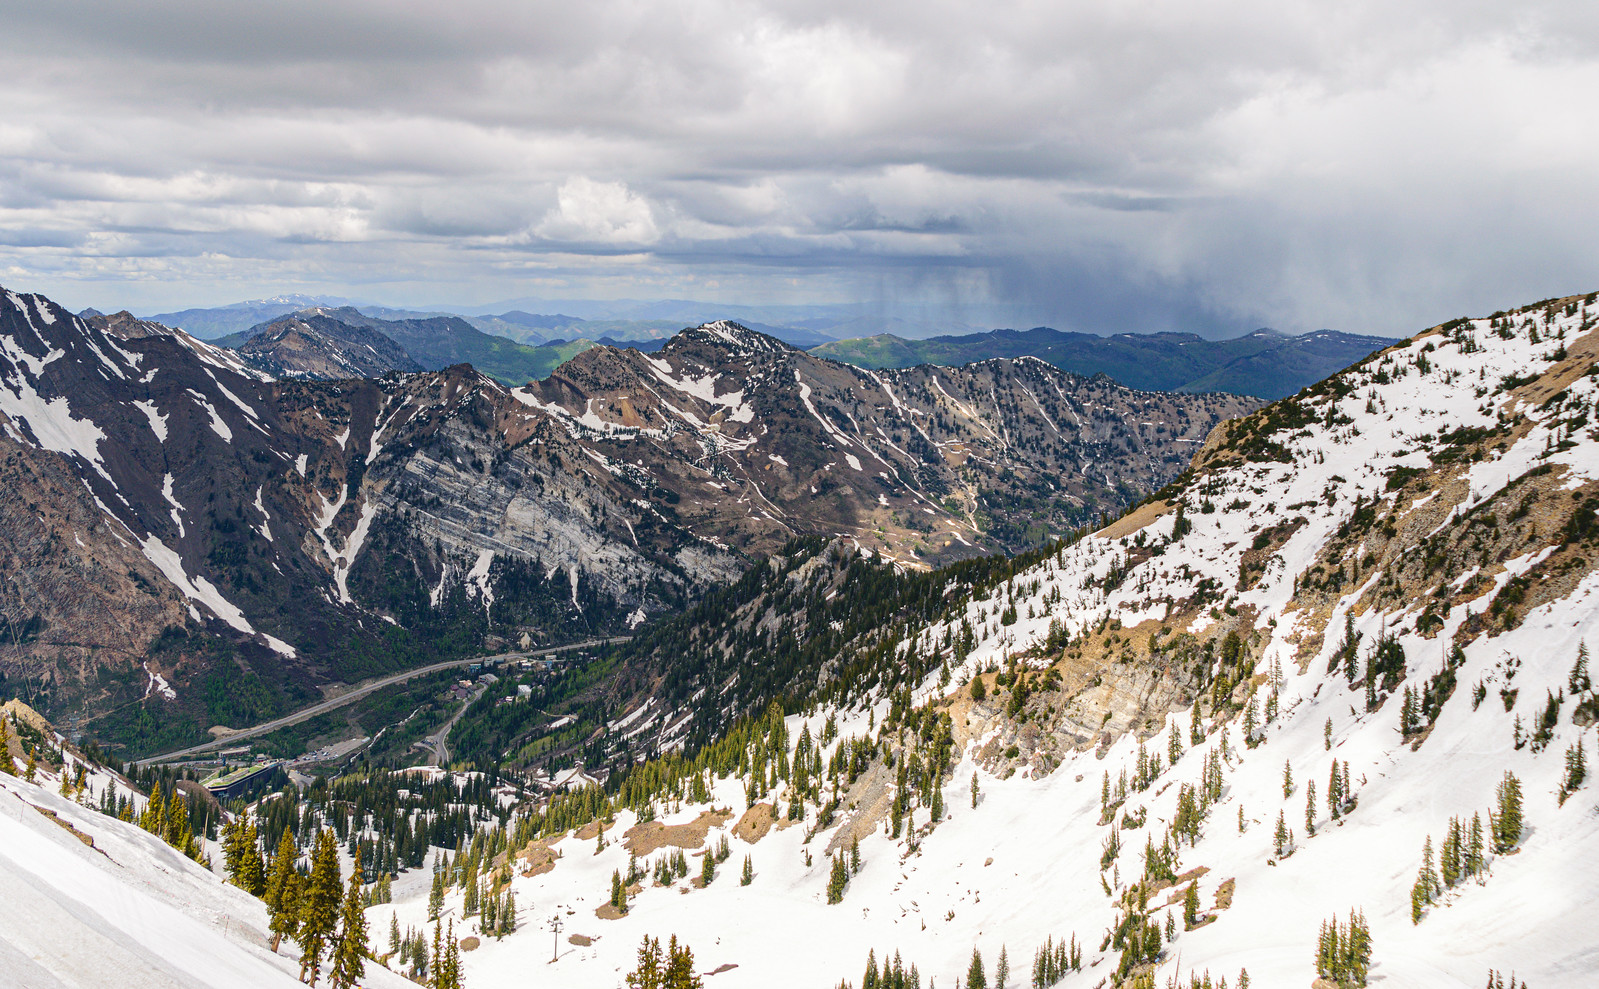 Snow covering parts of Snowbird